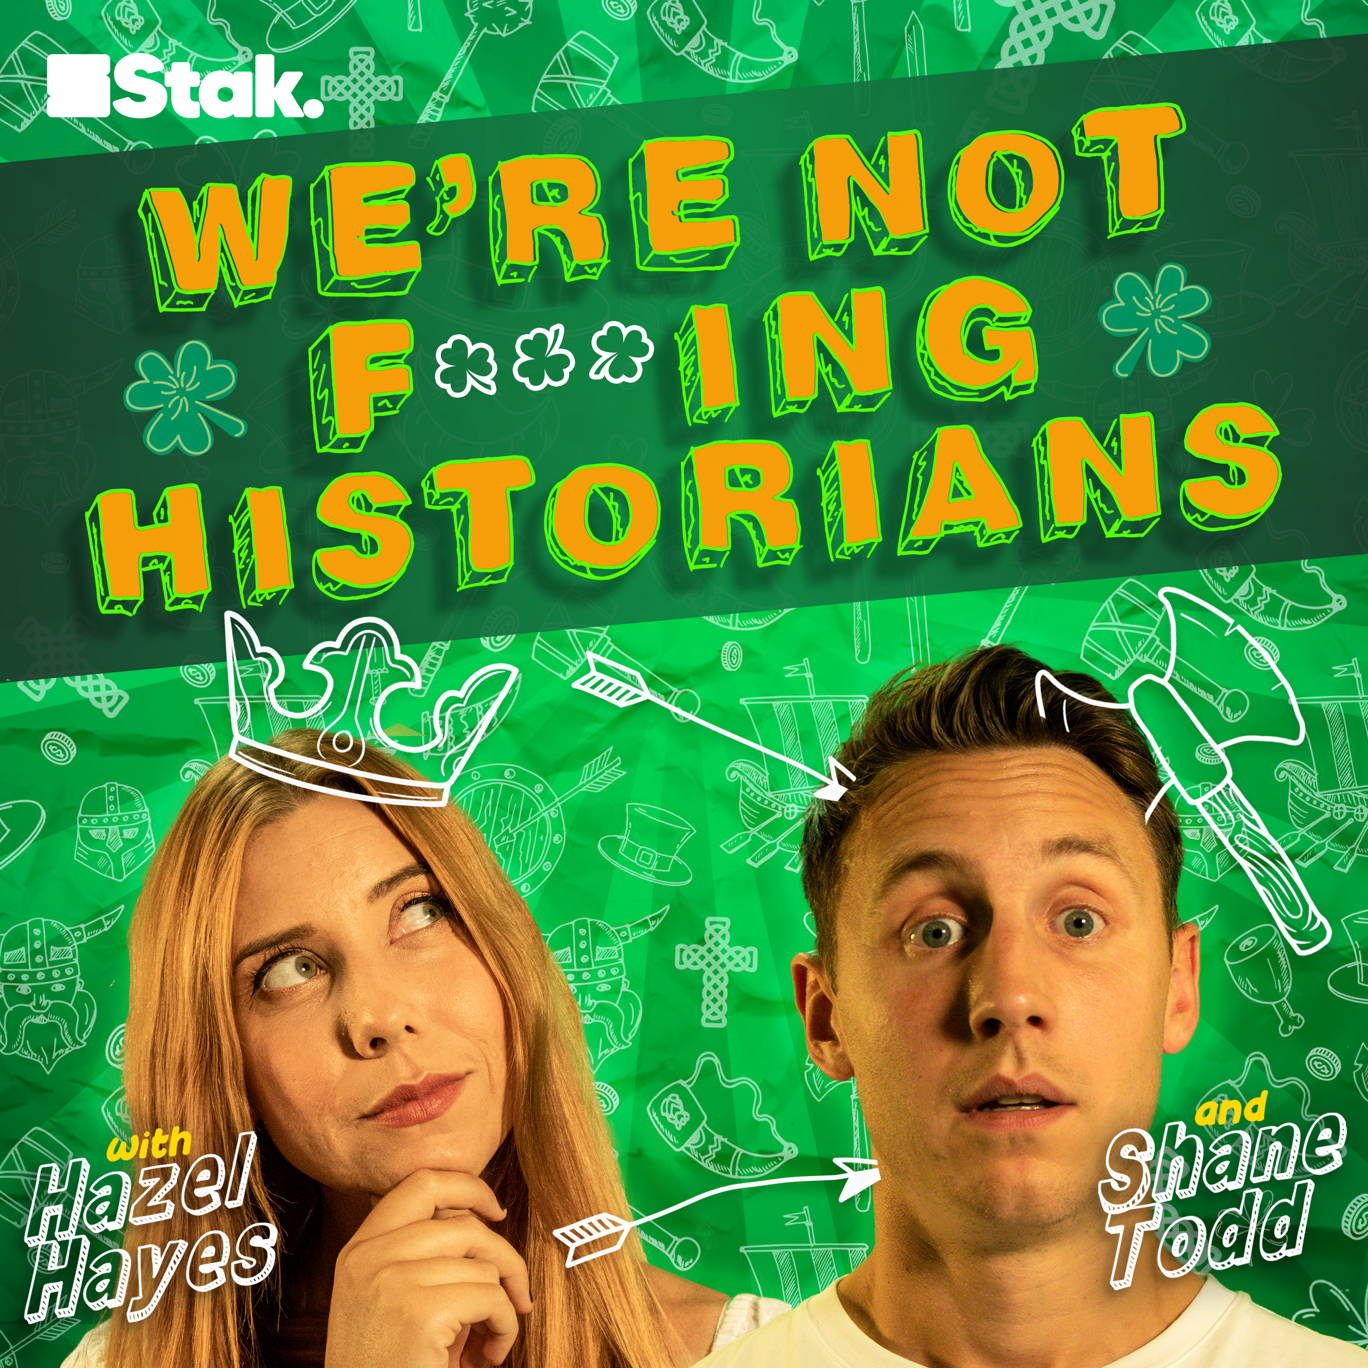 The artwork for the We're Not F***ing Historians podcast.